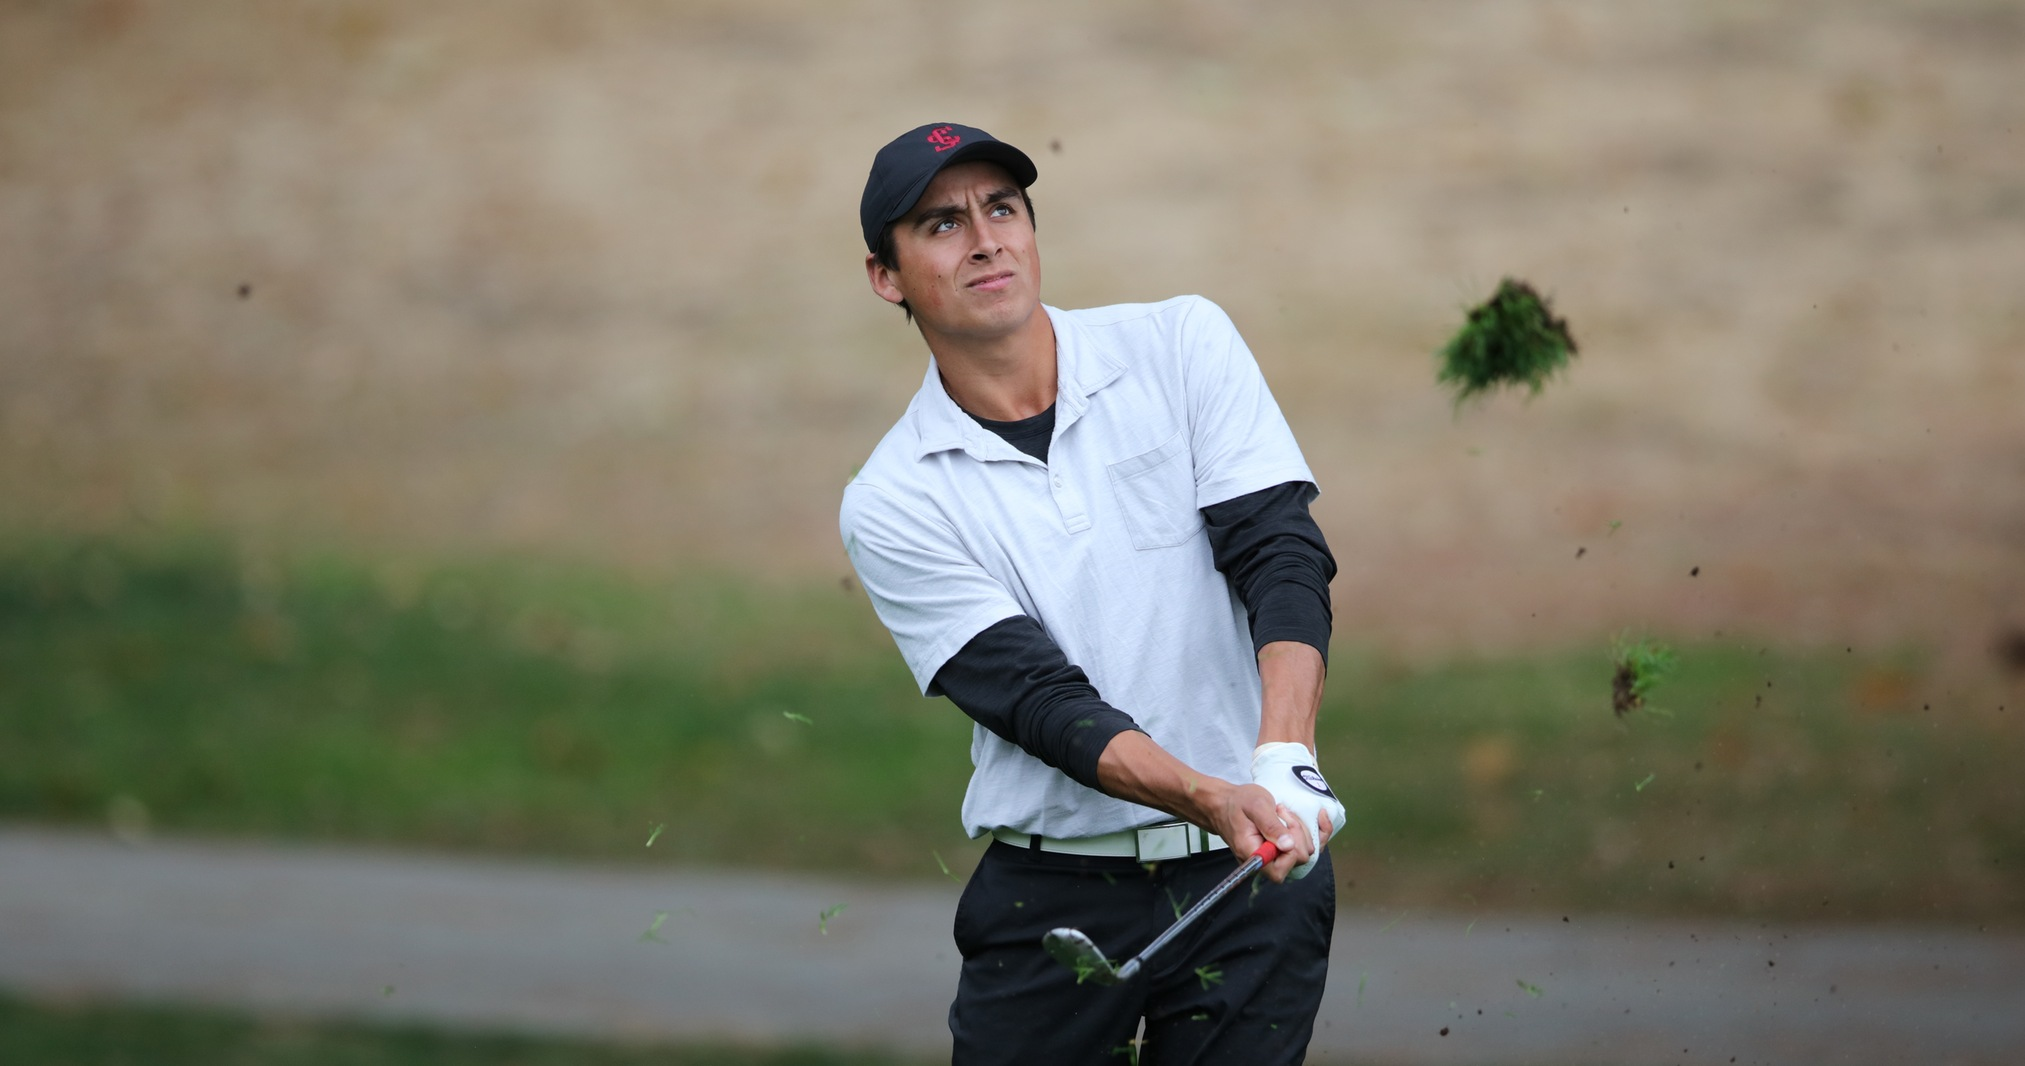 Men's Golf Opens Play Monday At Geiberger Invitational